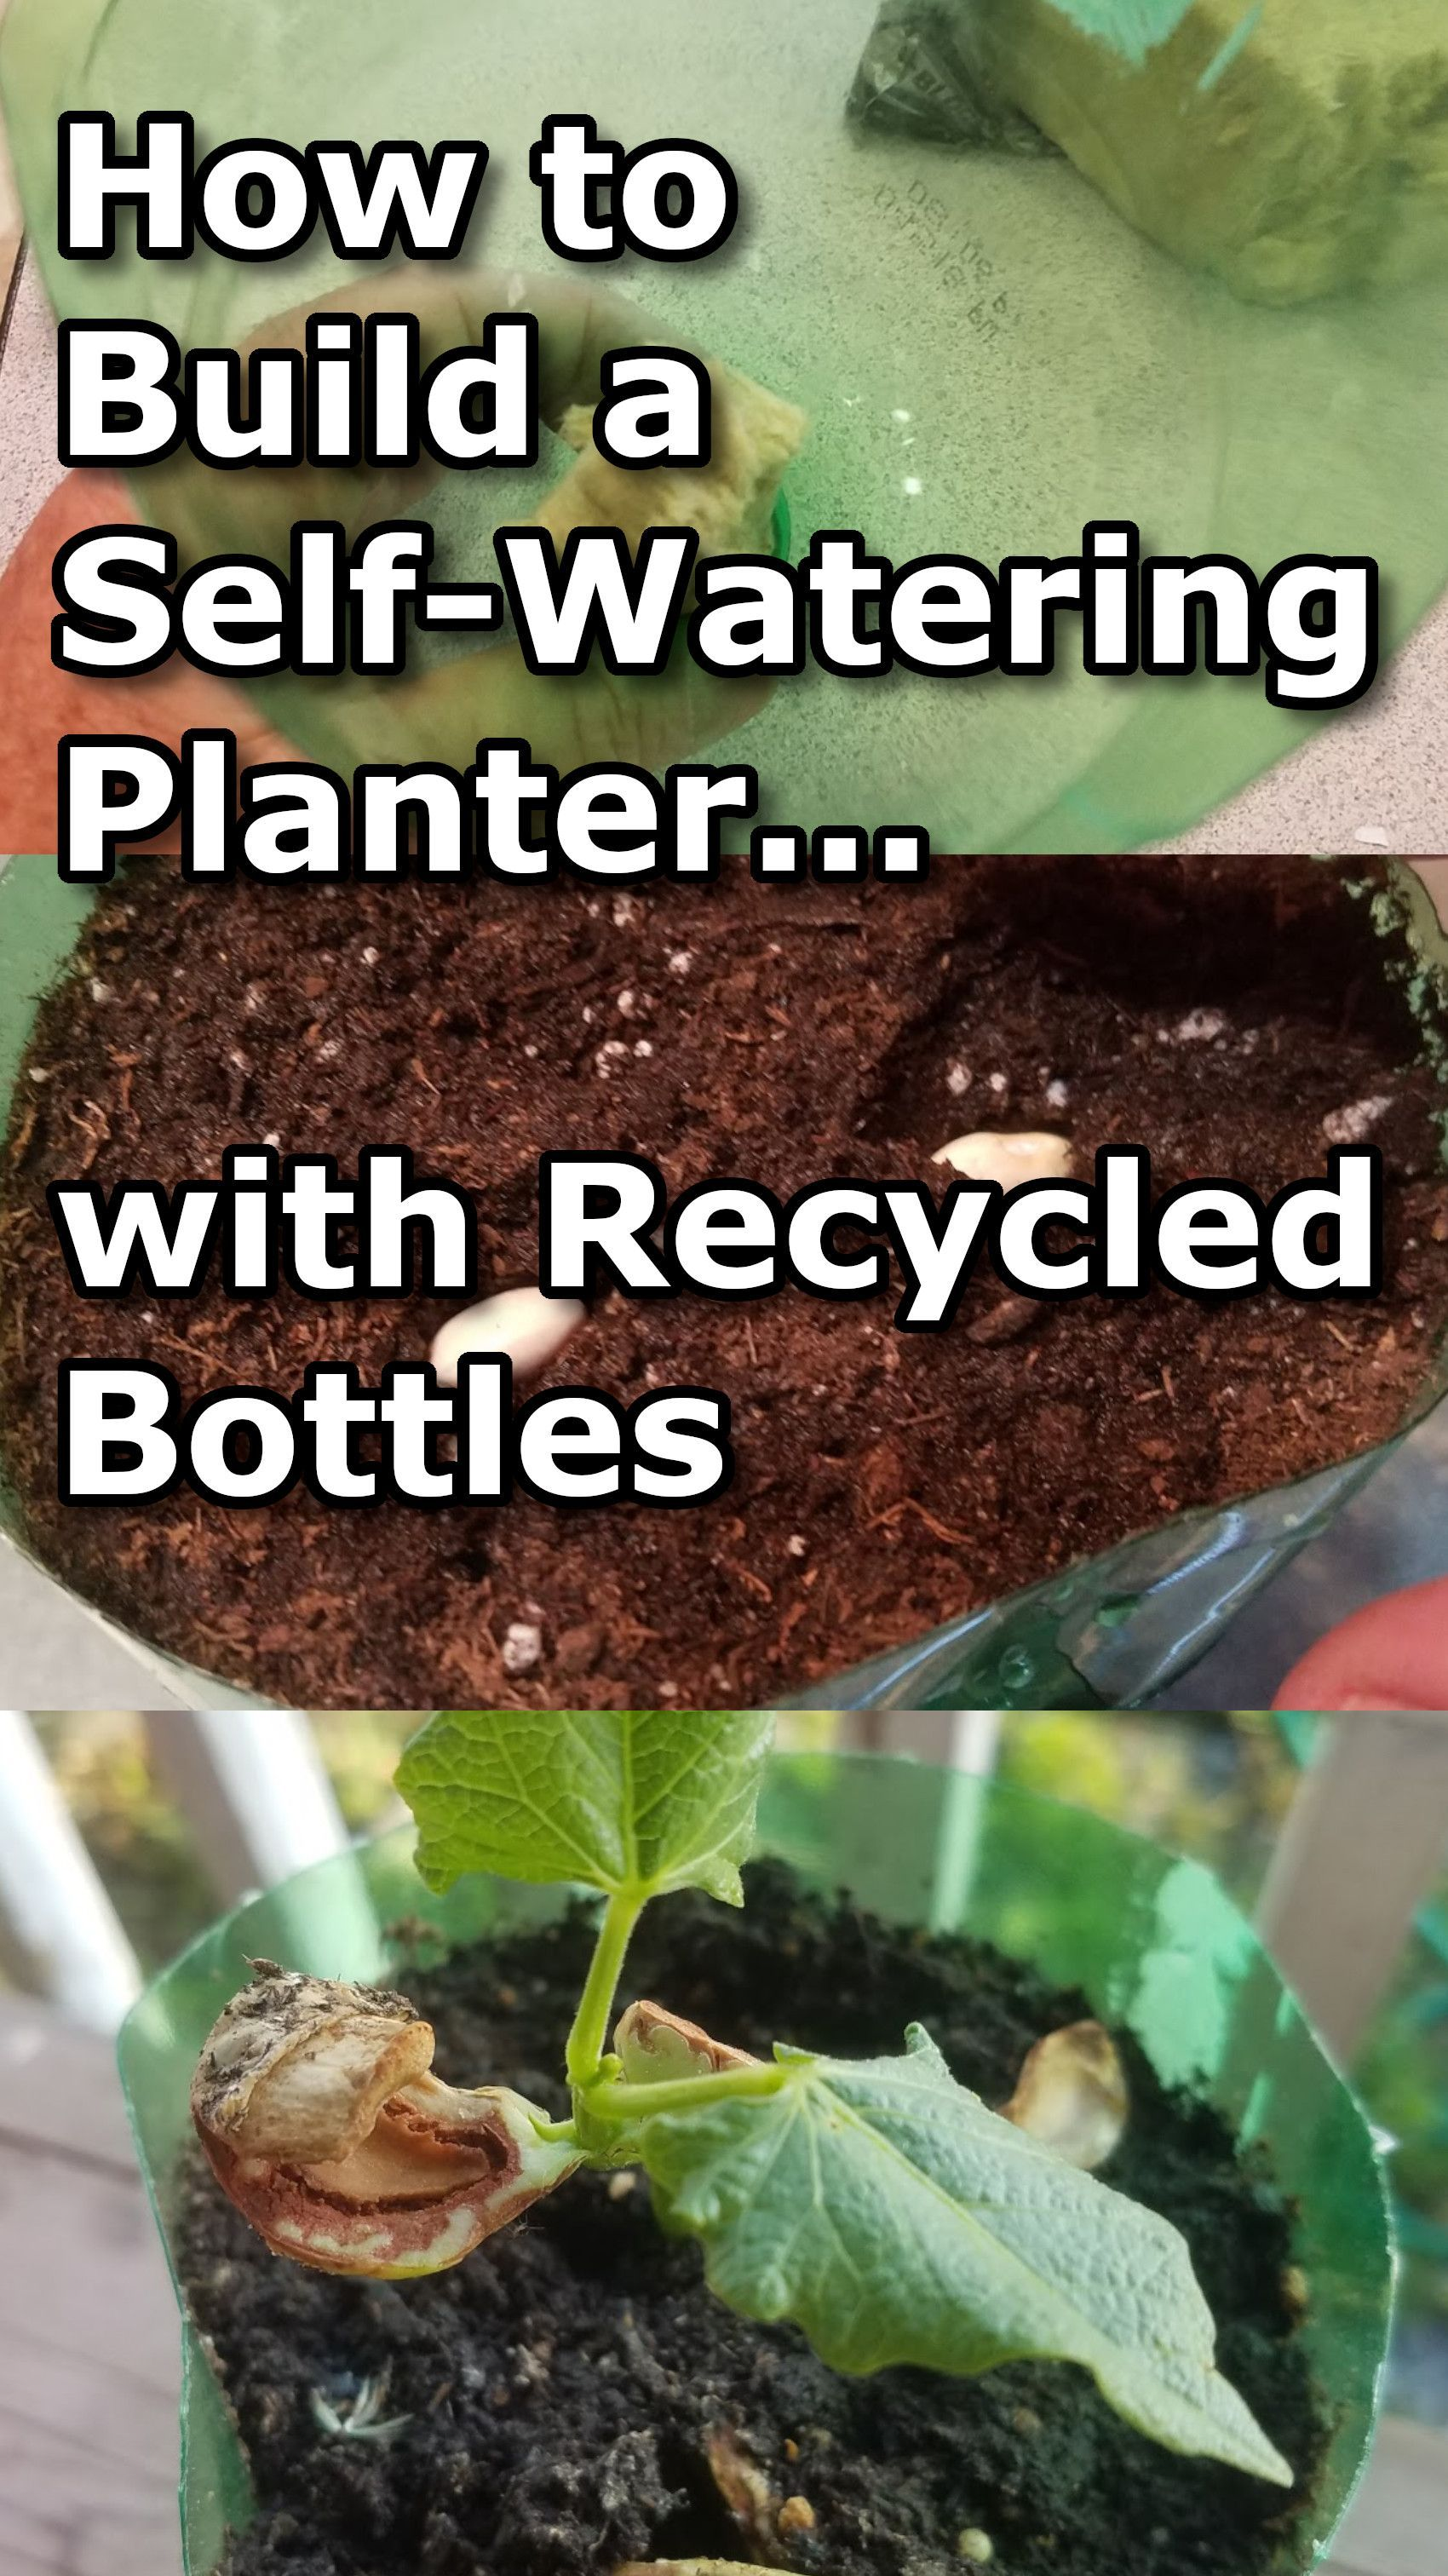 How to Build a Self-Watering Planter with a Recycled Bottle #selfwatering